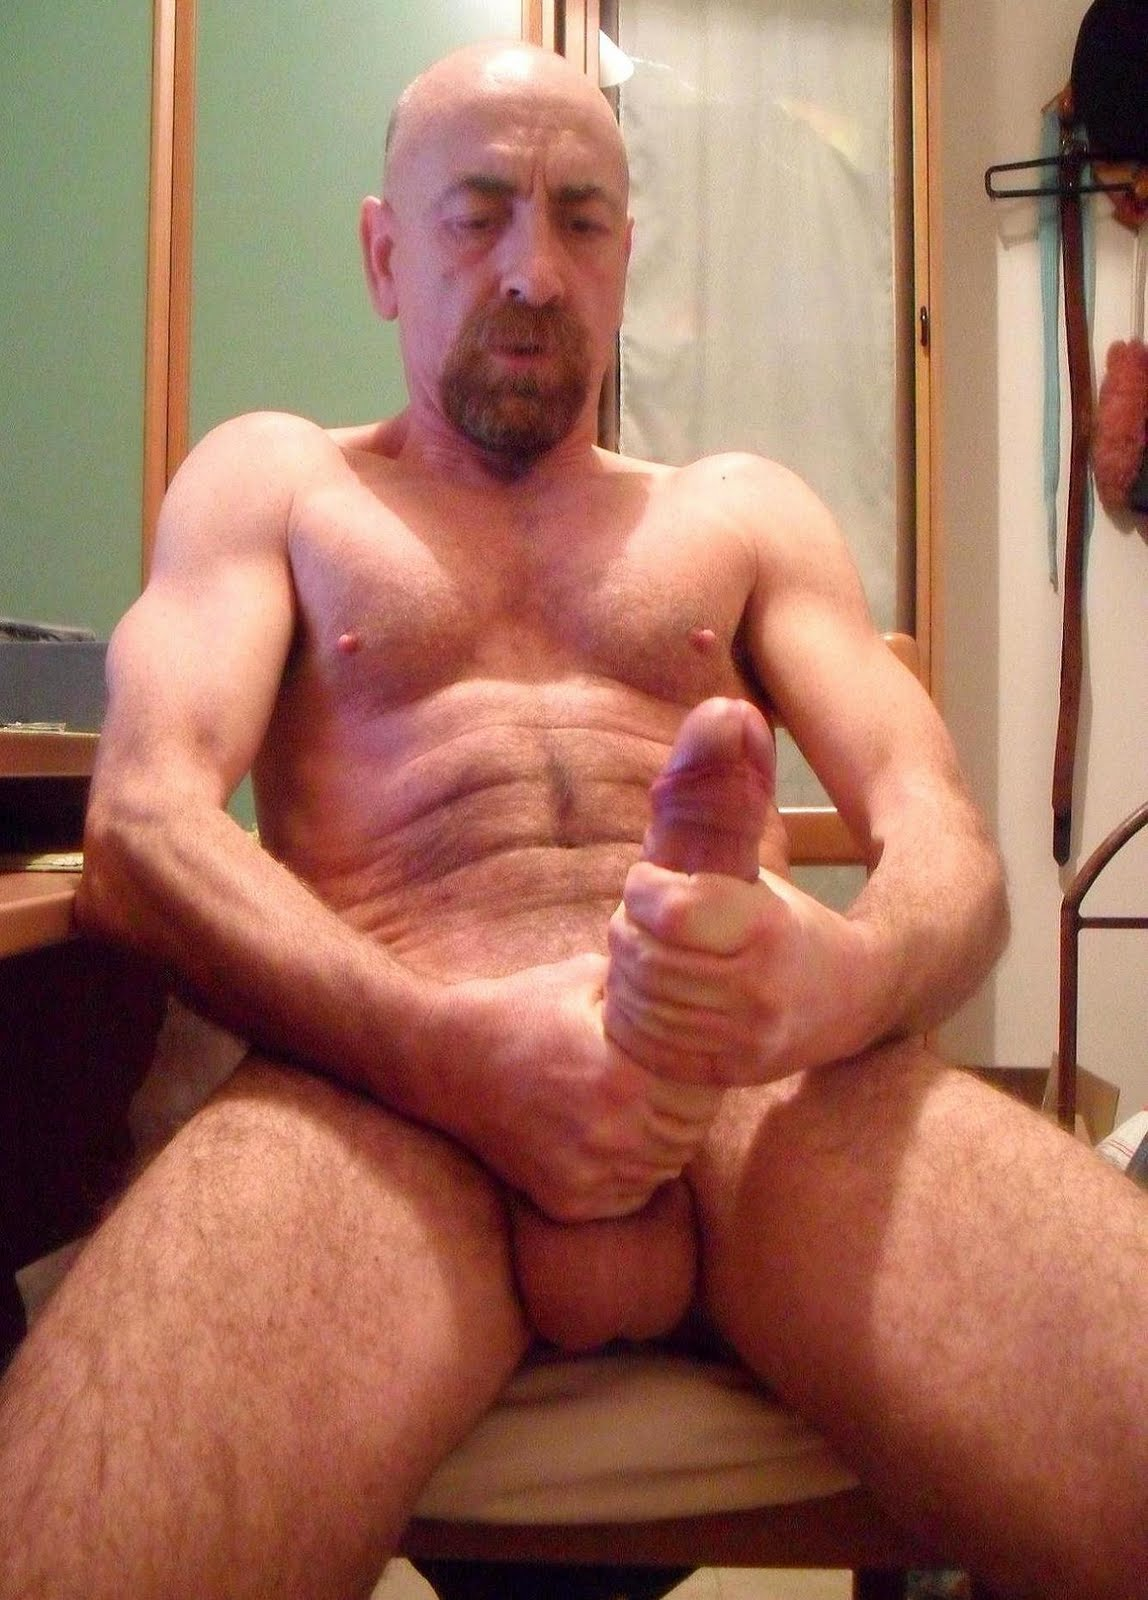 My Dads Big Cock Datawav Free Hot Nude Porn Pic Gallery